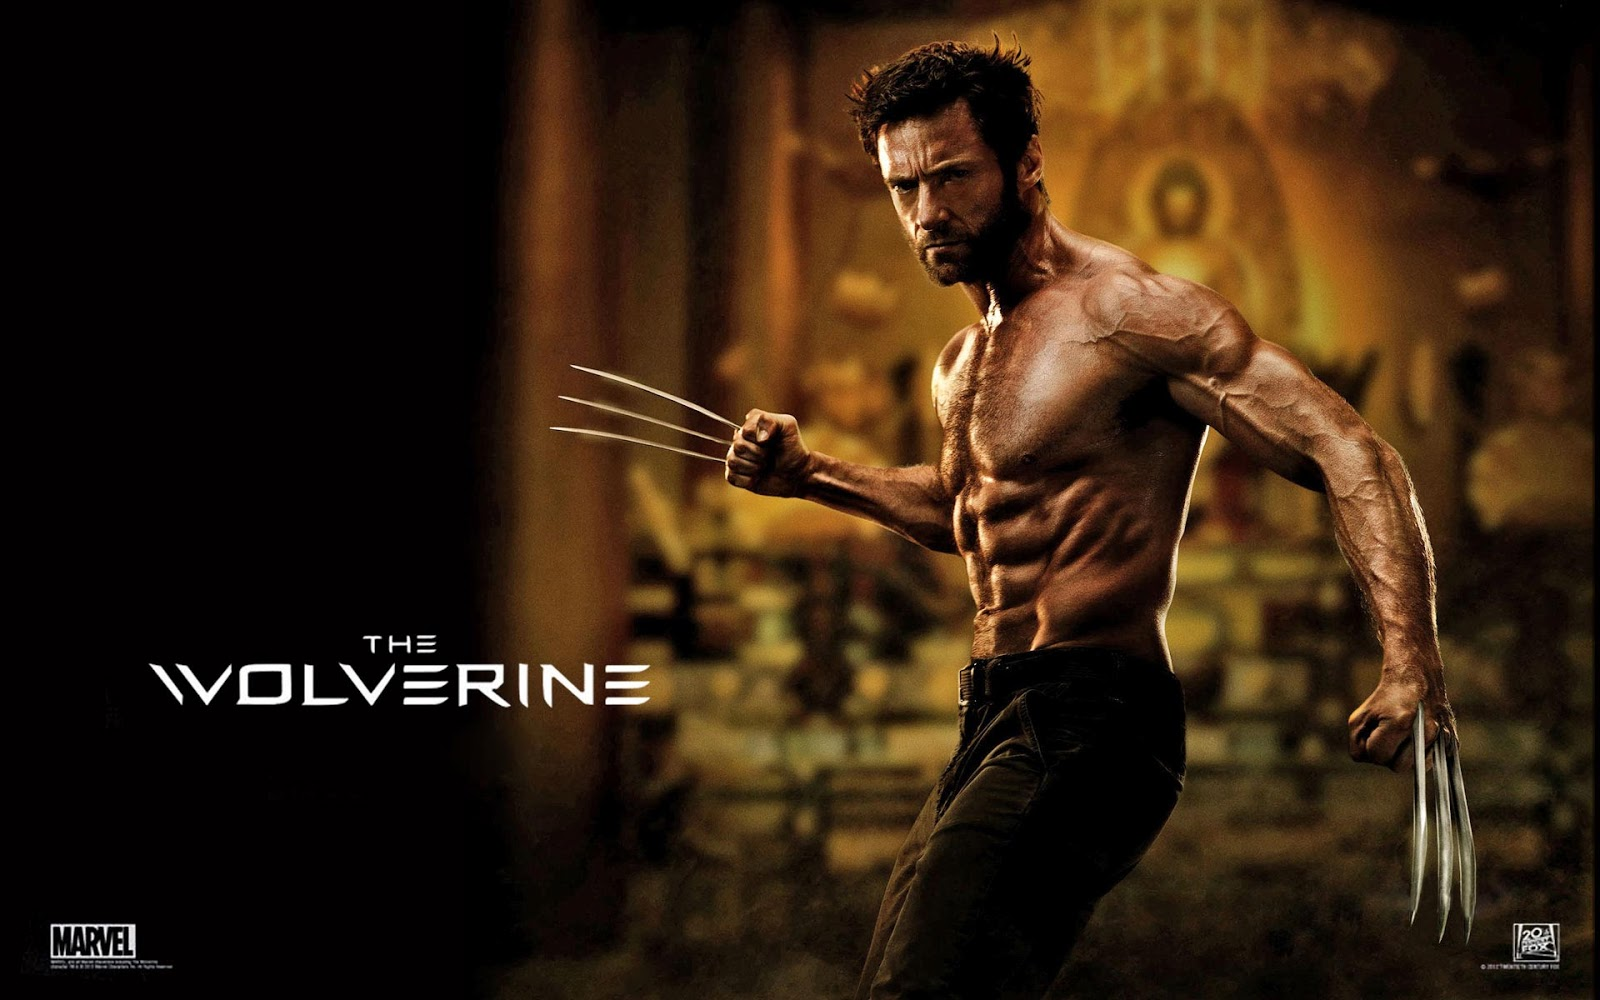 http://3.bp.blogspot.com/-b3NKG9yV4Z8/UYcyWFzaLFI/AAAAAAAAAYM/XVqWaQieUWQ/s1600/The+Wolverine+2013+Movie+Wide.jpg